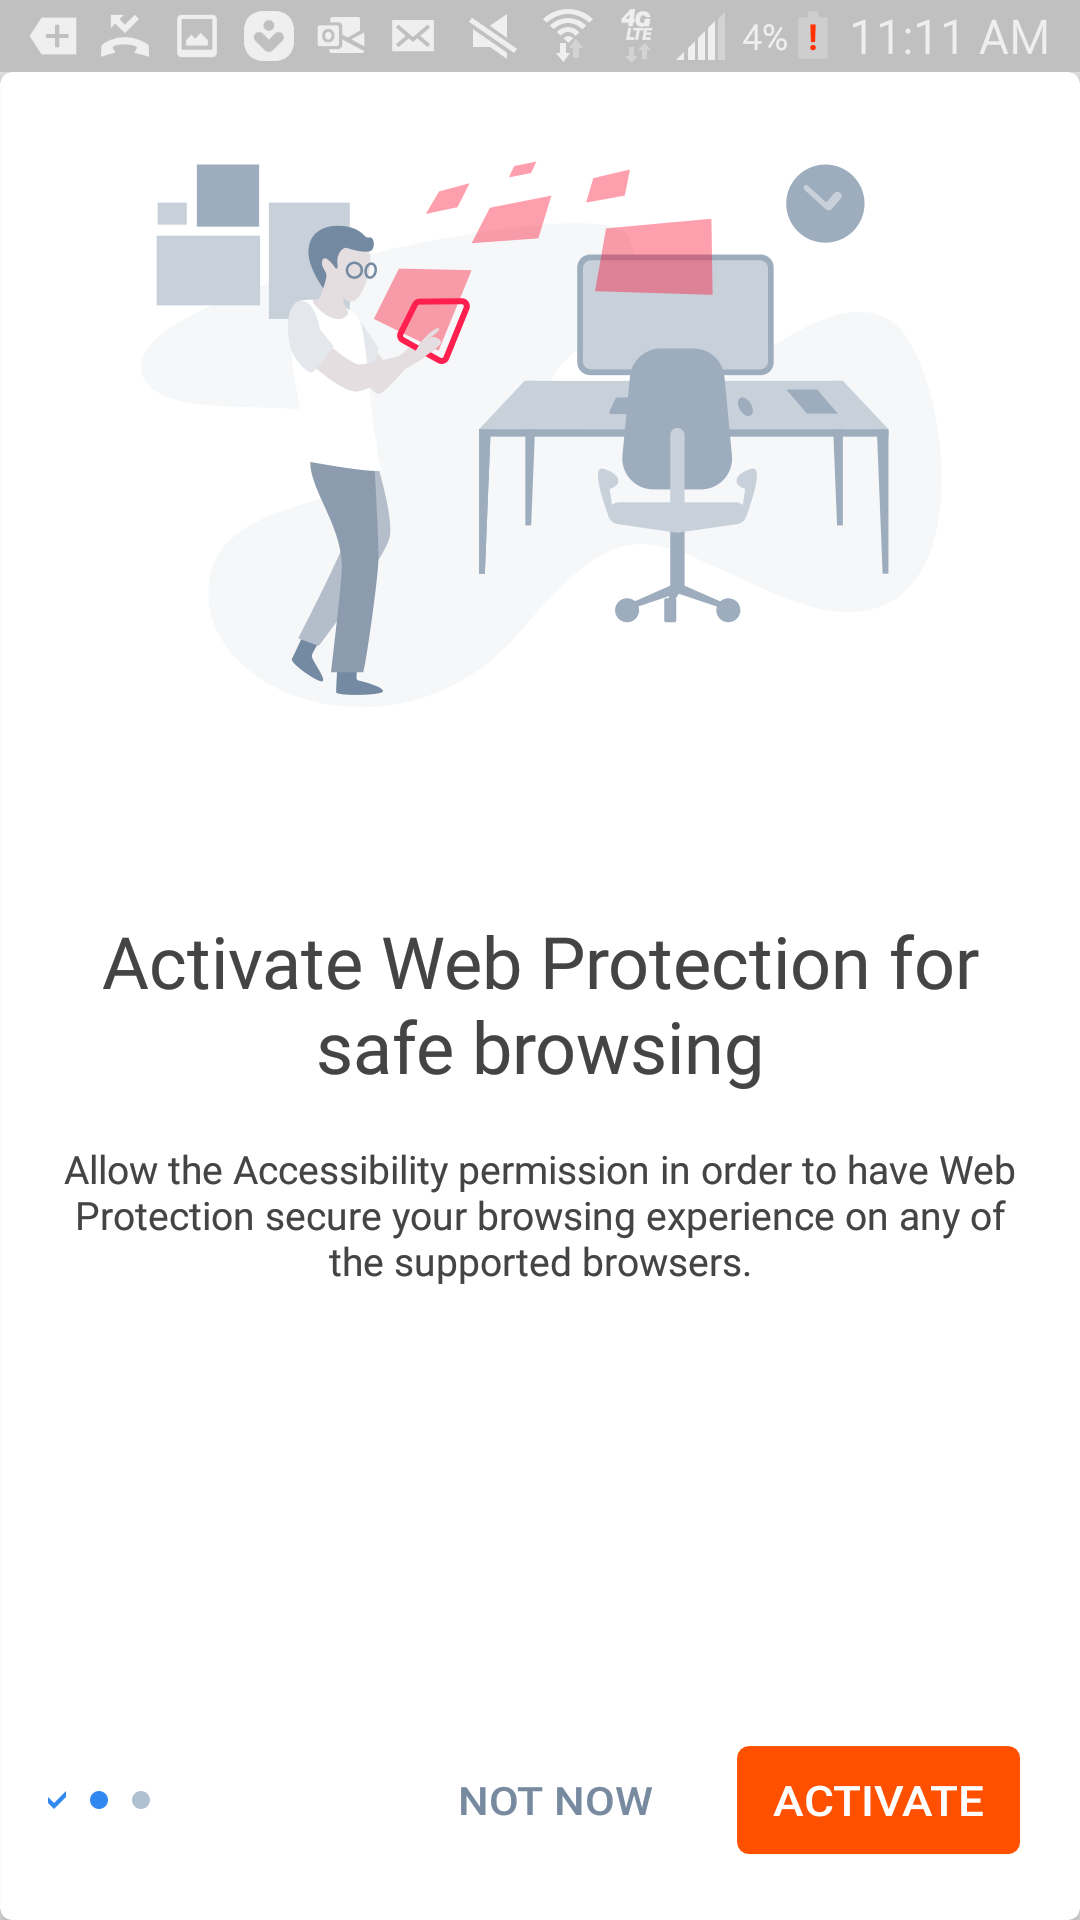 Activate_Web_Protection_1.png